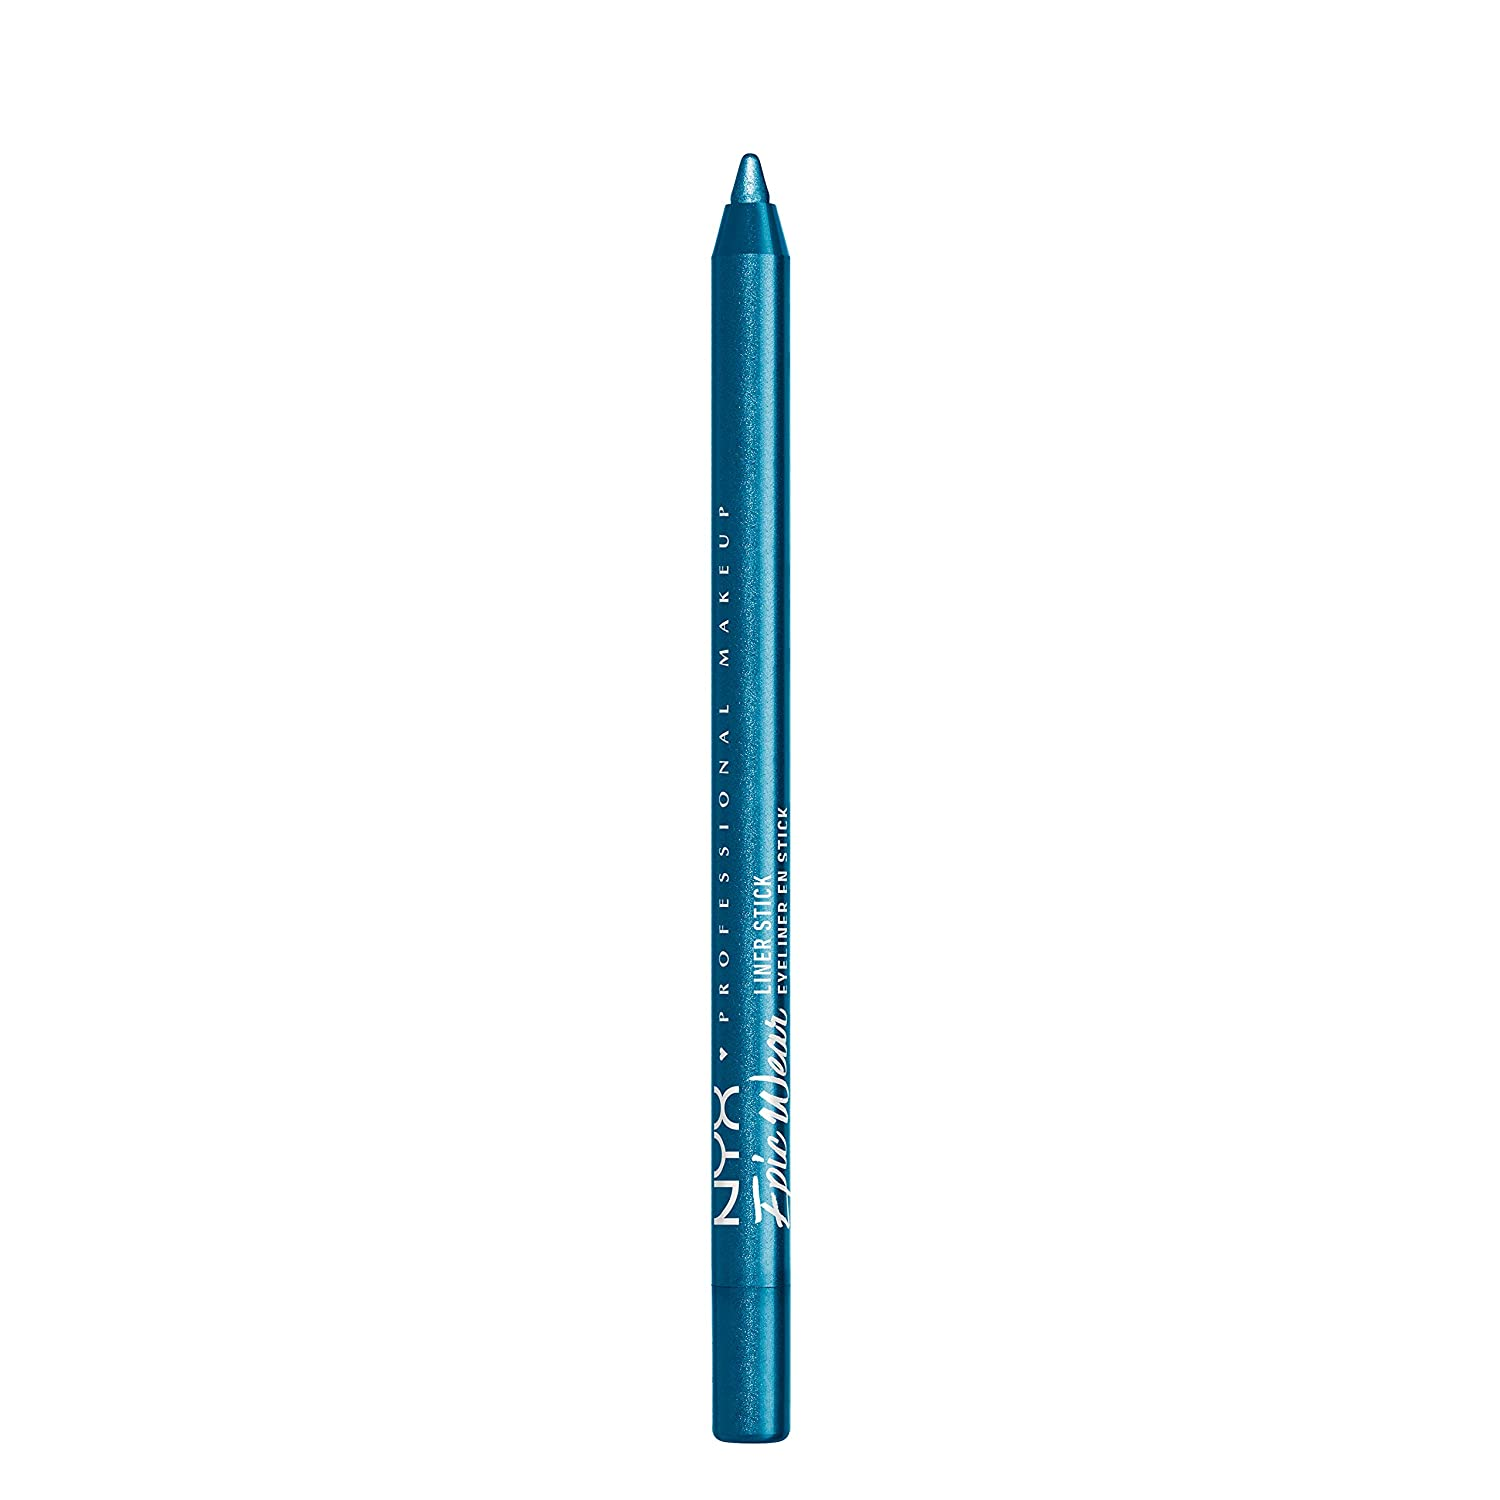 NYX PROFESSIONAL MAKEUP Epic Wear Liner Stick, Eyeliner Pencil - Turquoise Storm